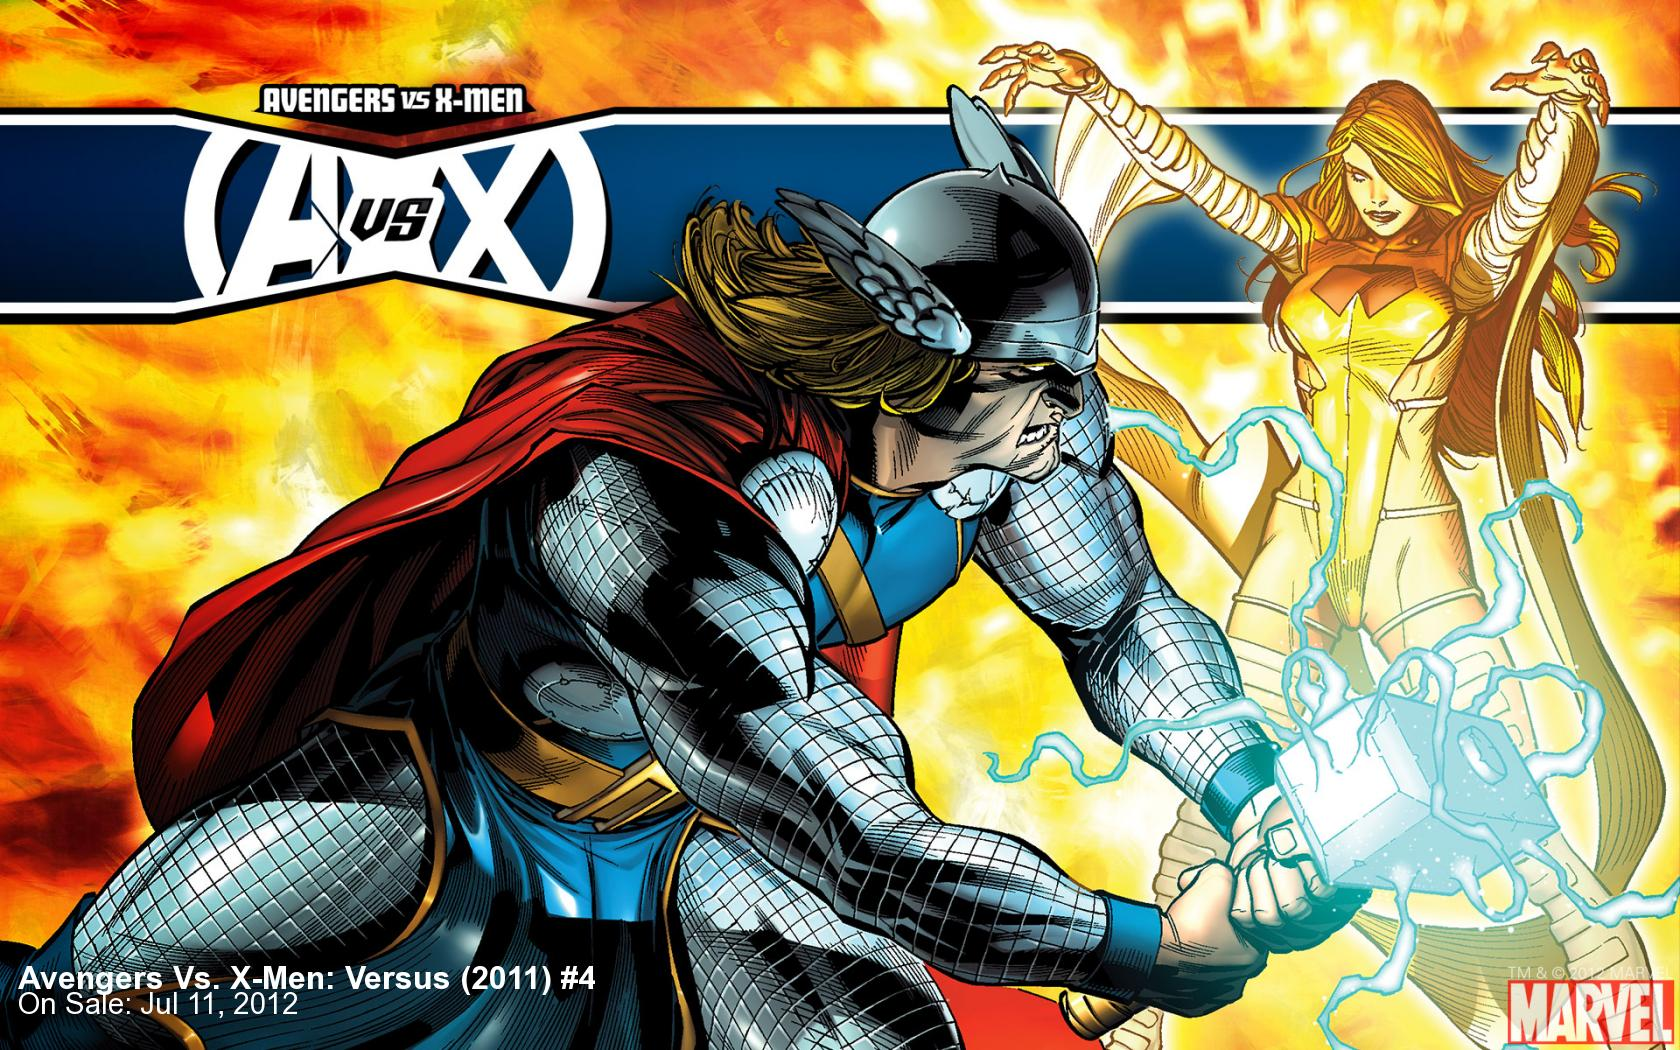 Avengers Vs. X-Men: Versus (2011) #4